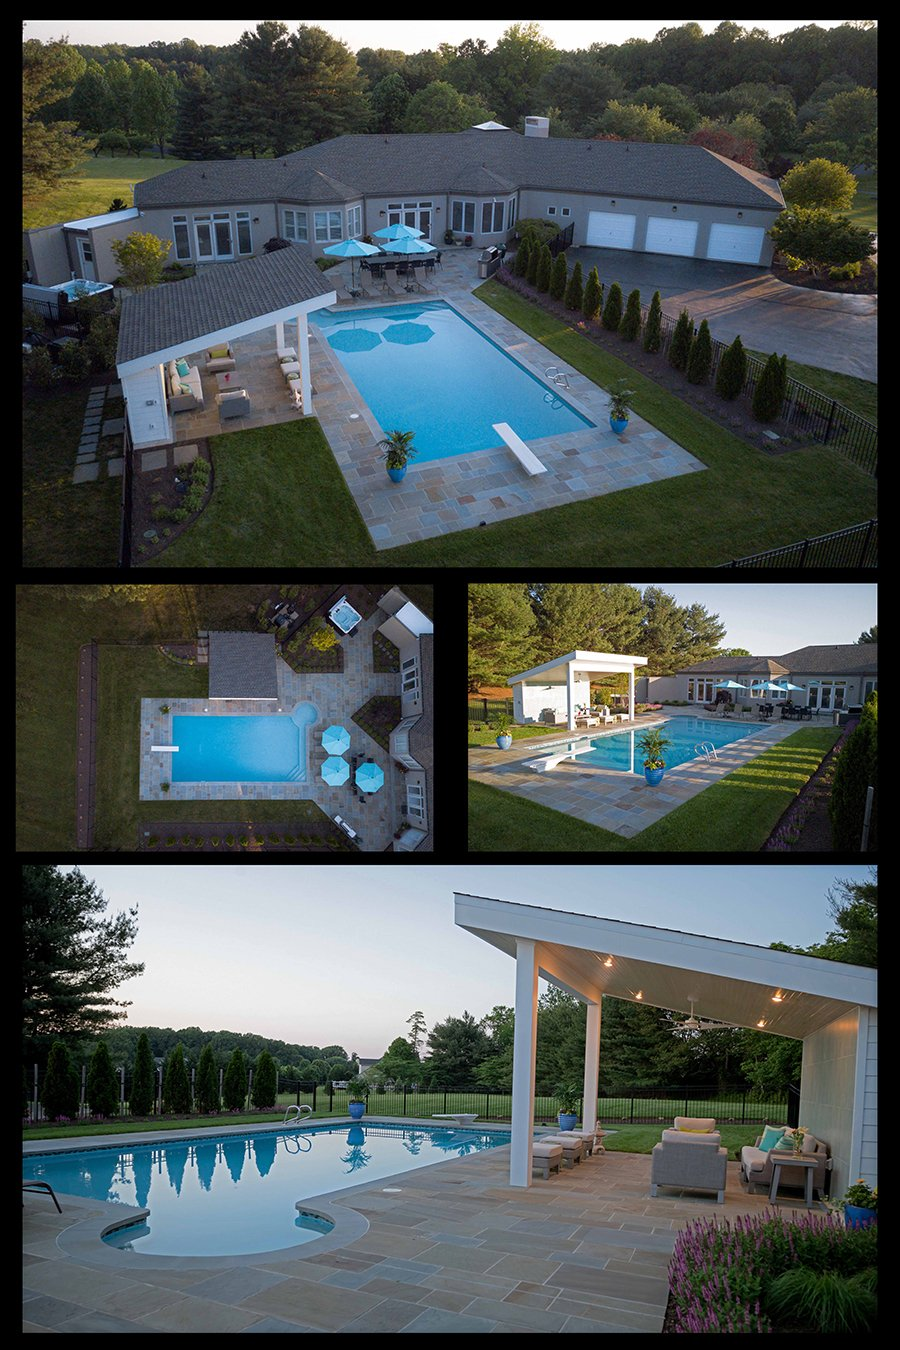 swimming pool design and construction in howard county, md